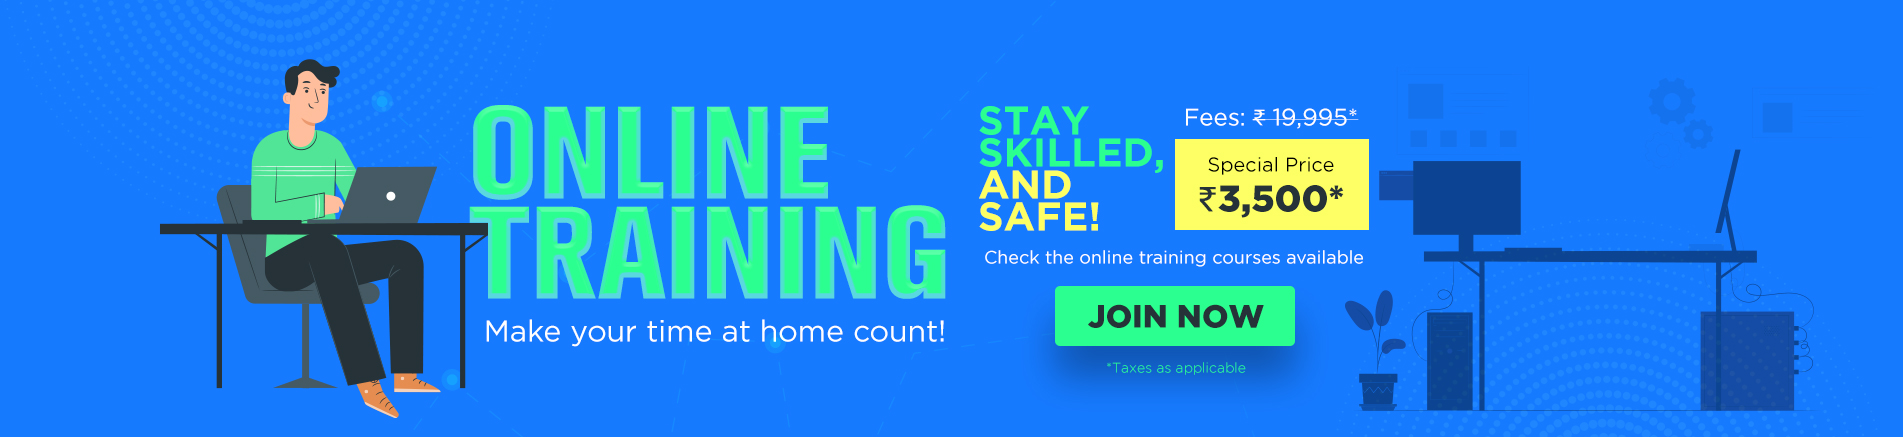 Virtual Trainings - Stay skilled, Stay safe